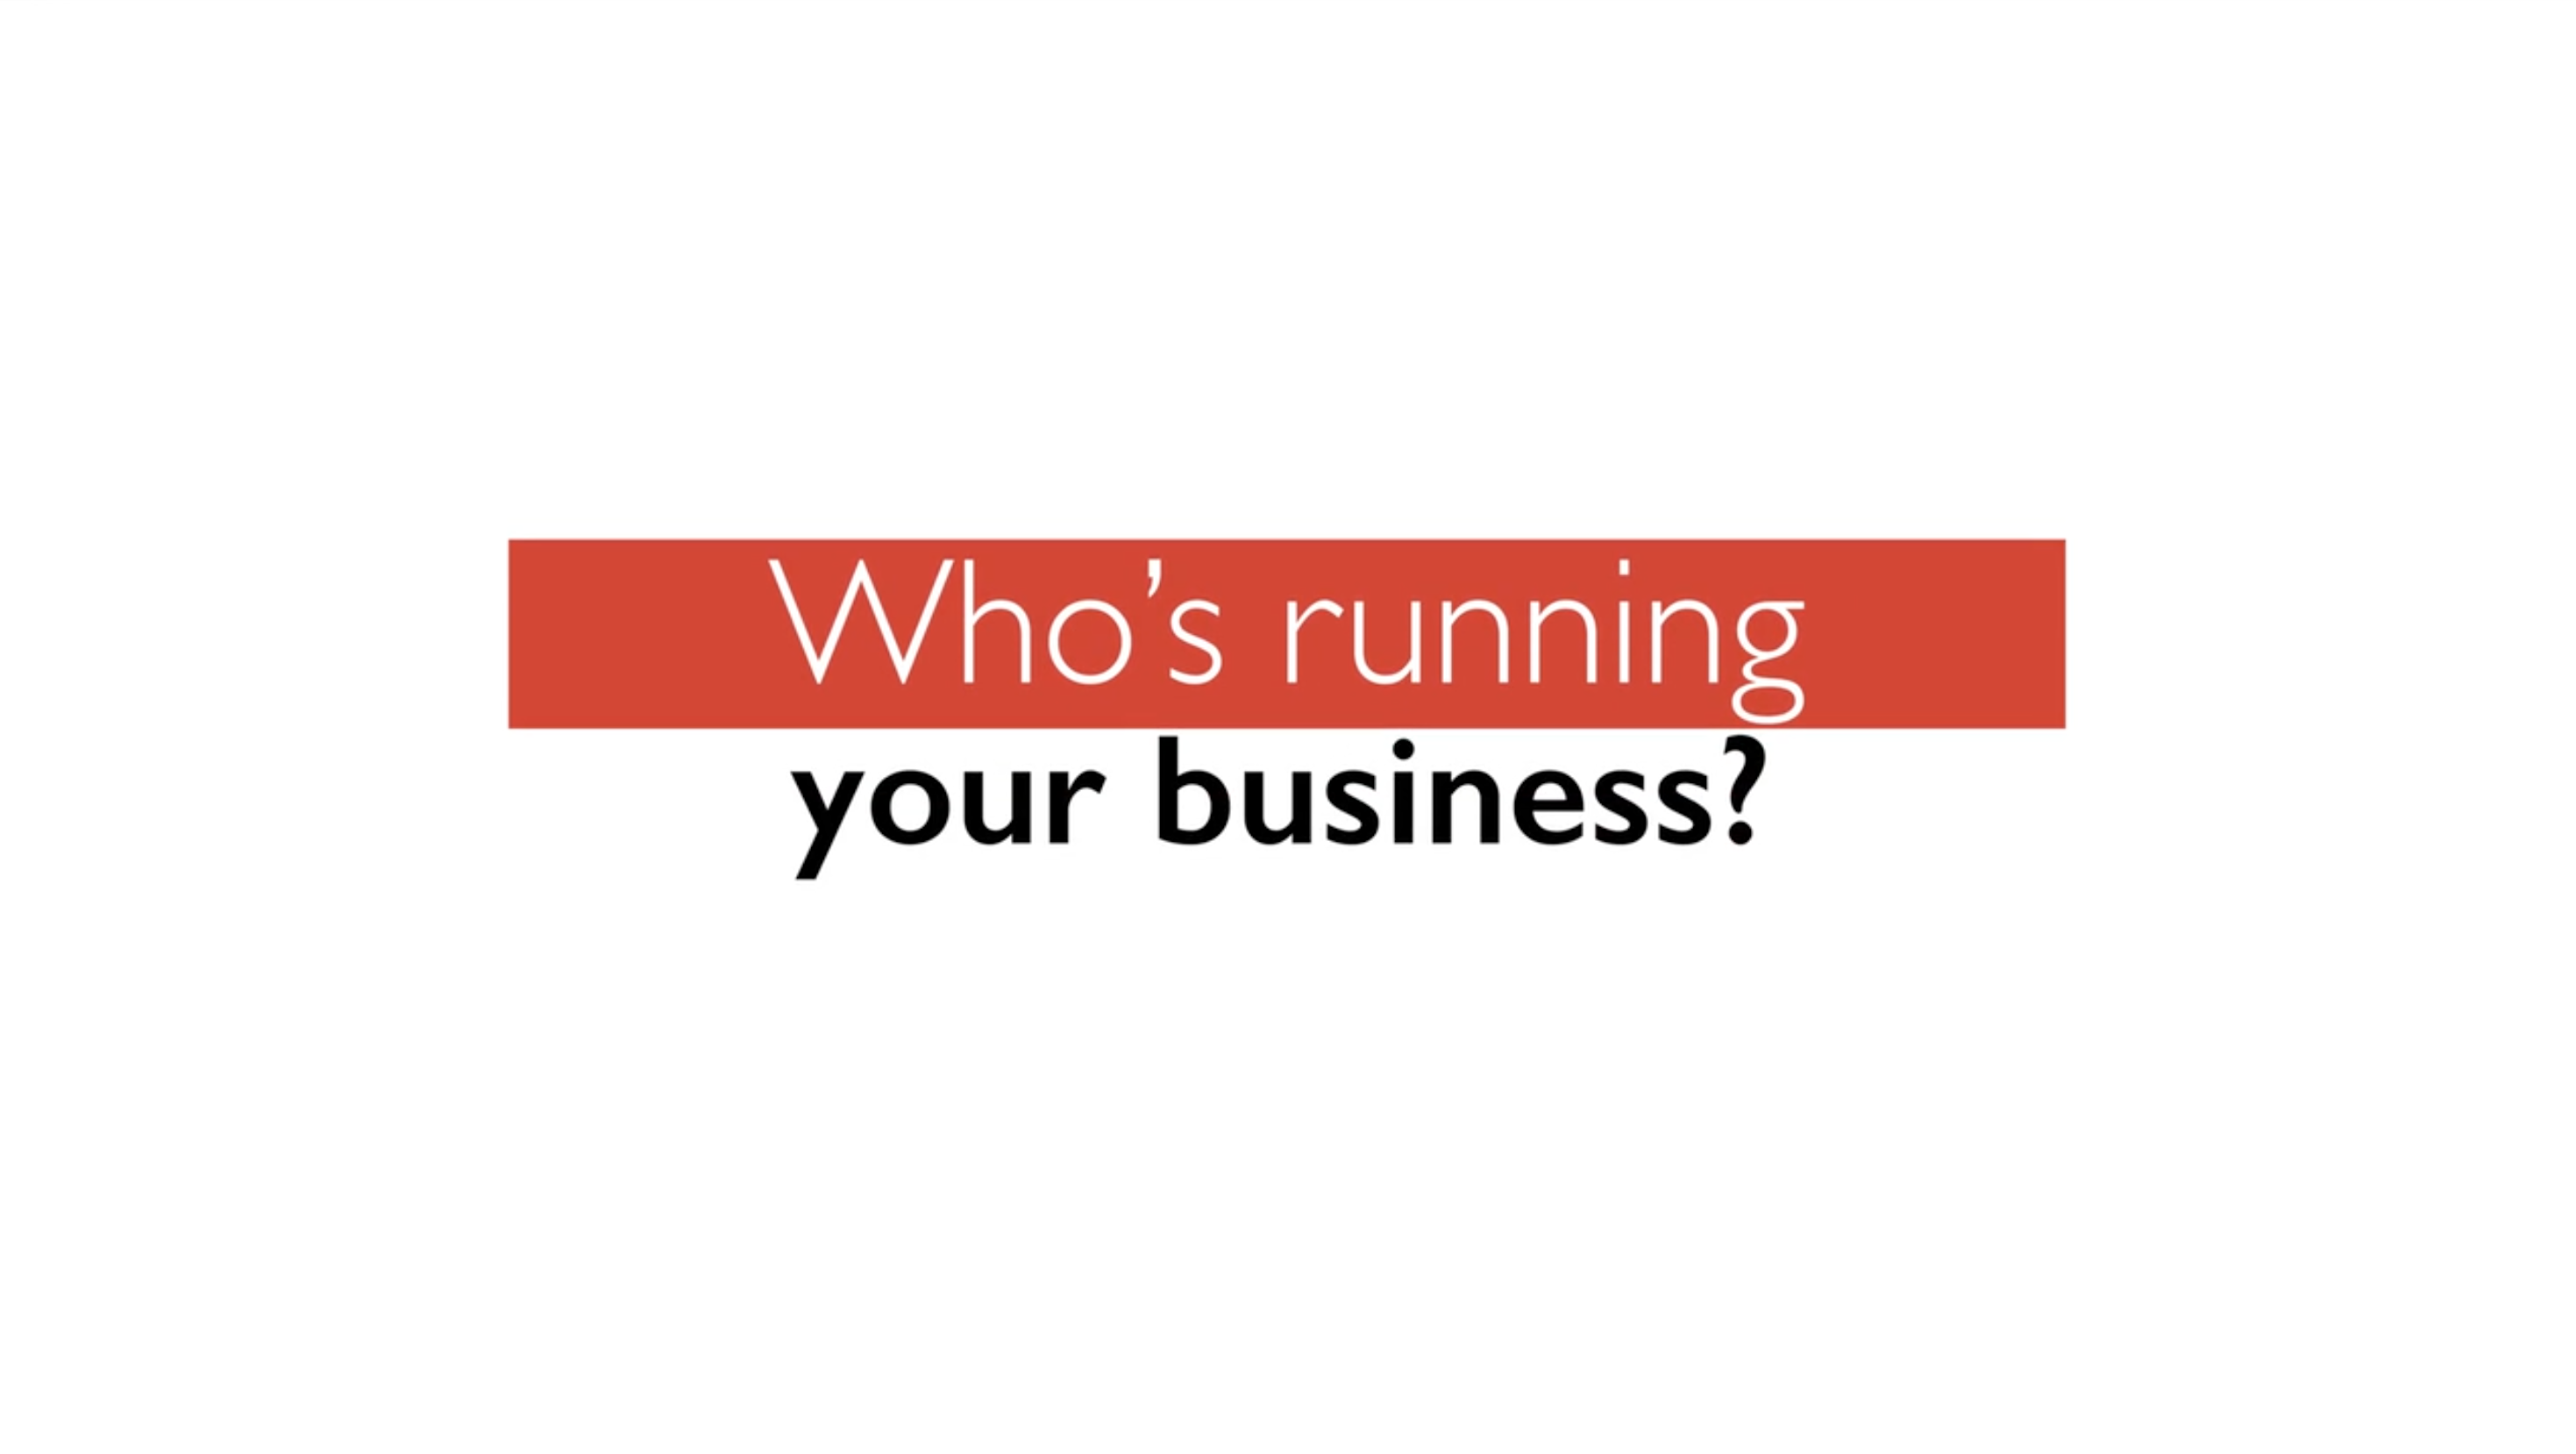 text on white background: who's running your business?